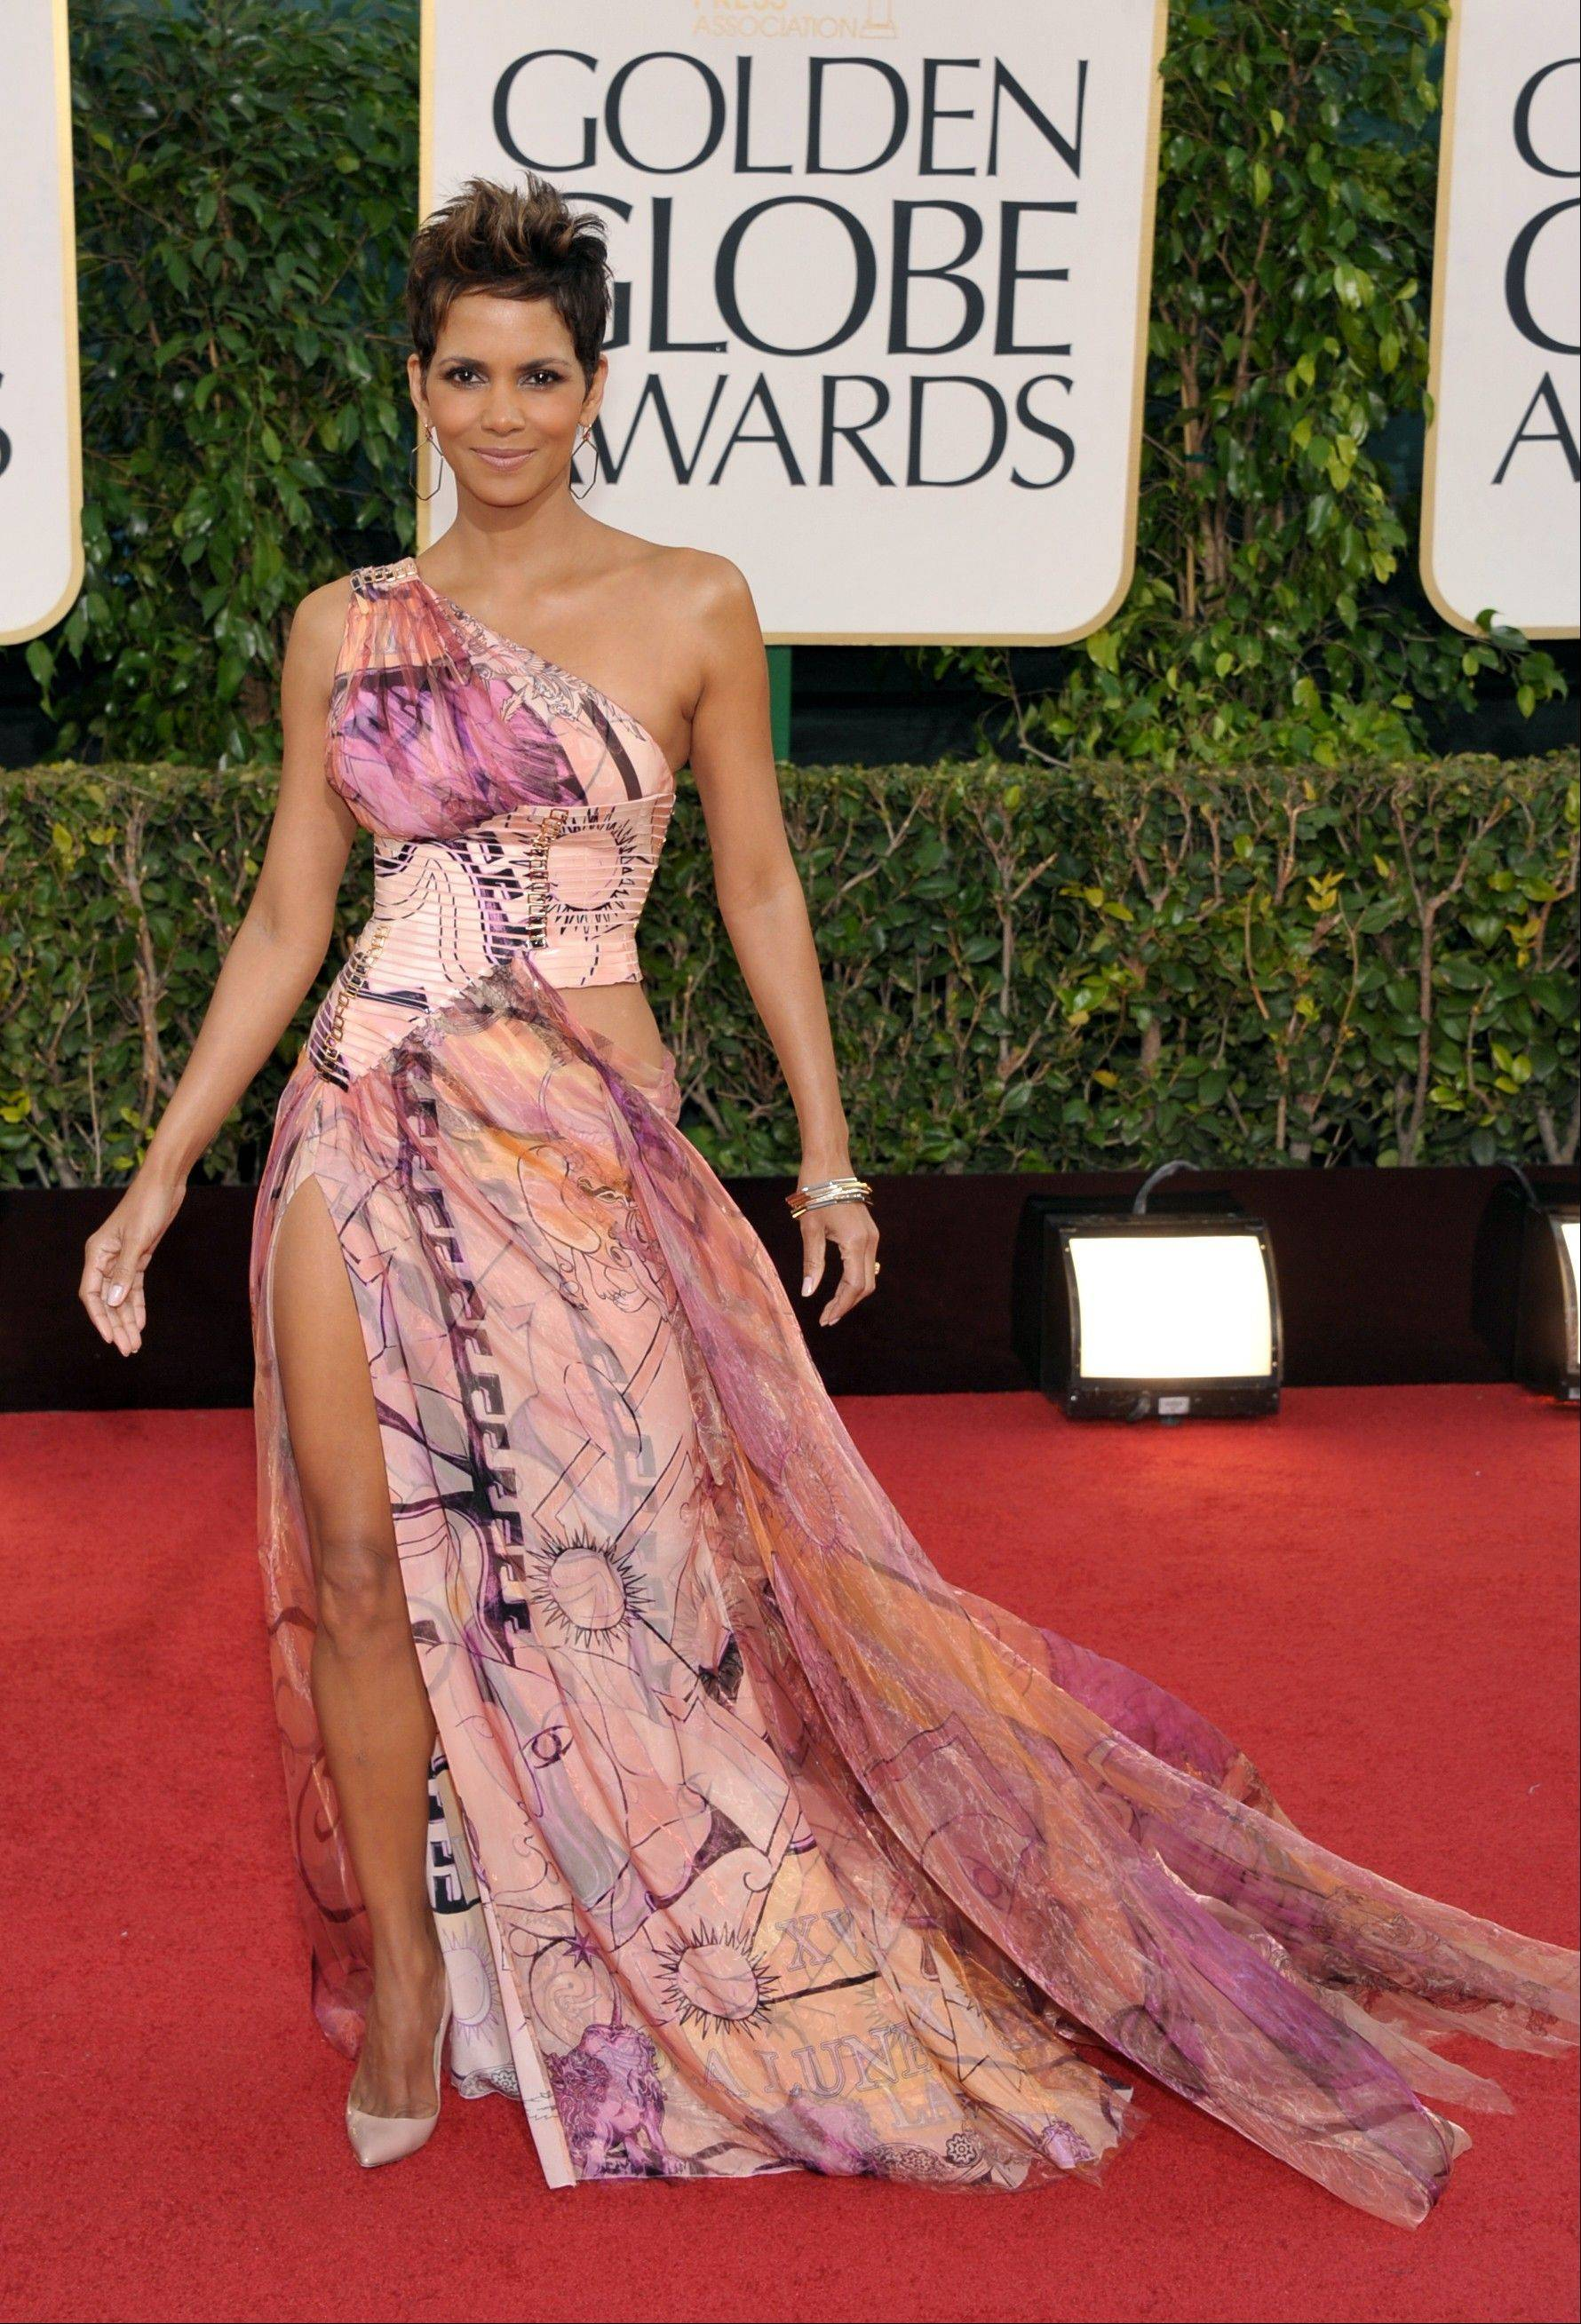 Actress Halle Berry arrives at the 70th Annual Golden Globe Awards at the Beverly Hilton Hotel on Sunday Jan. 13, 2013, in Beverly Hills, Calif.